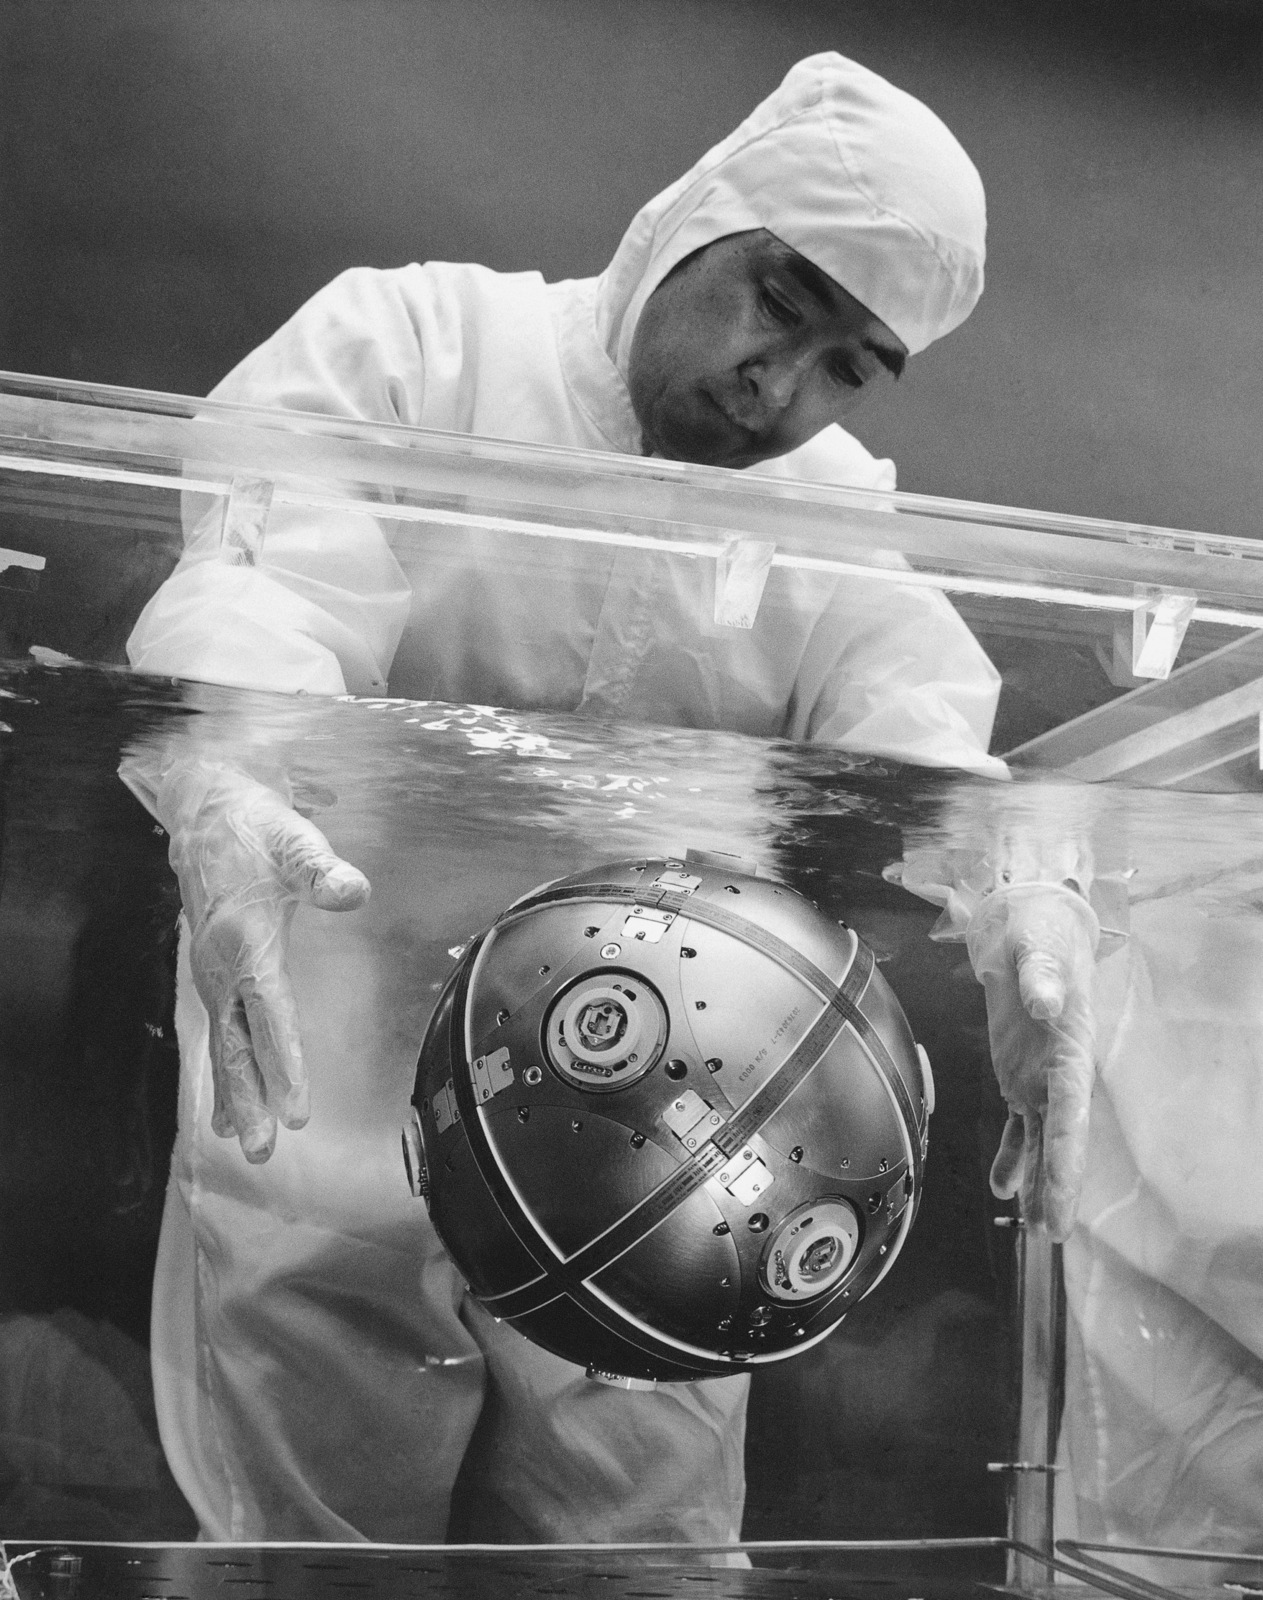 """A Northrop Corporation technician tests the buoyancy and balance of a """"floating ball"""" element of the new inertial guidance system being developed for the US Air Force's MX advanced intercontinental ballistic missile technology program"""